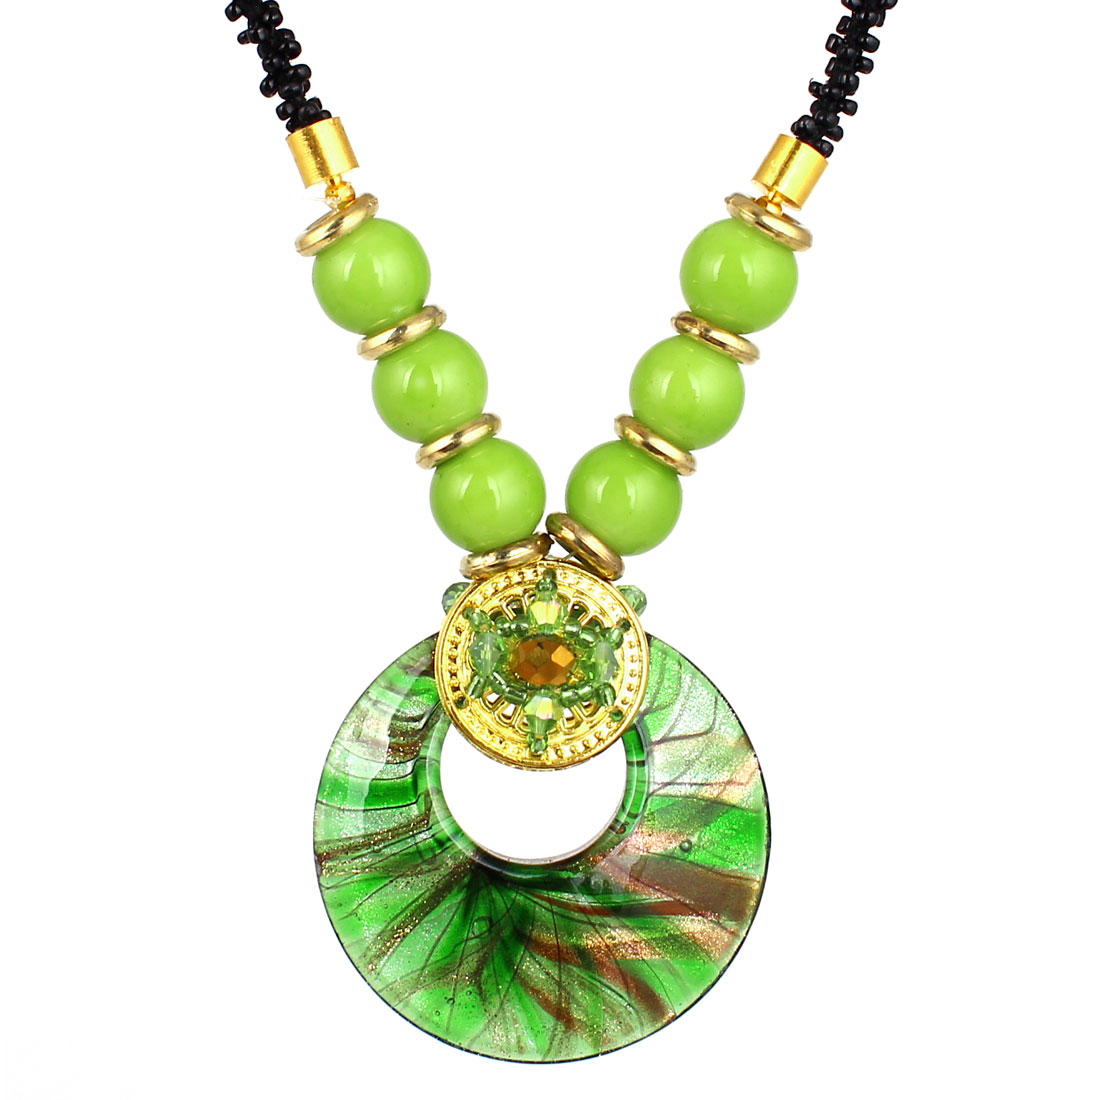 Black Green Plastic Beads Rhinestone Inlaid Glass Round Pendant Necklace for Lady